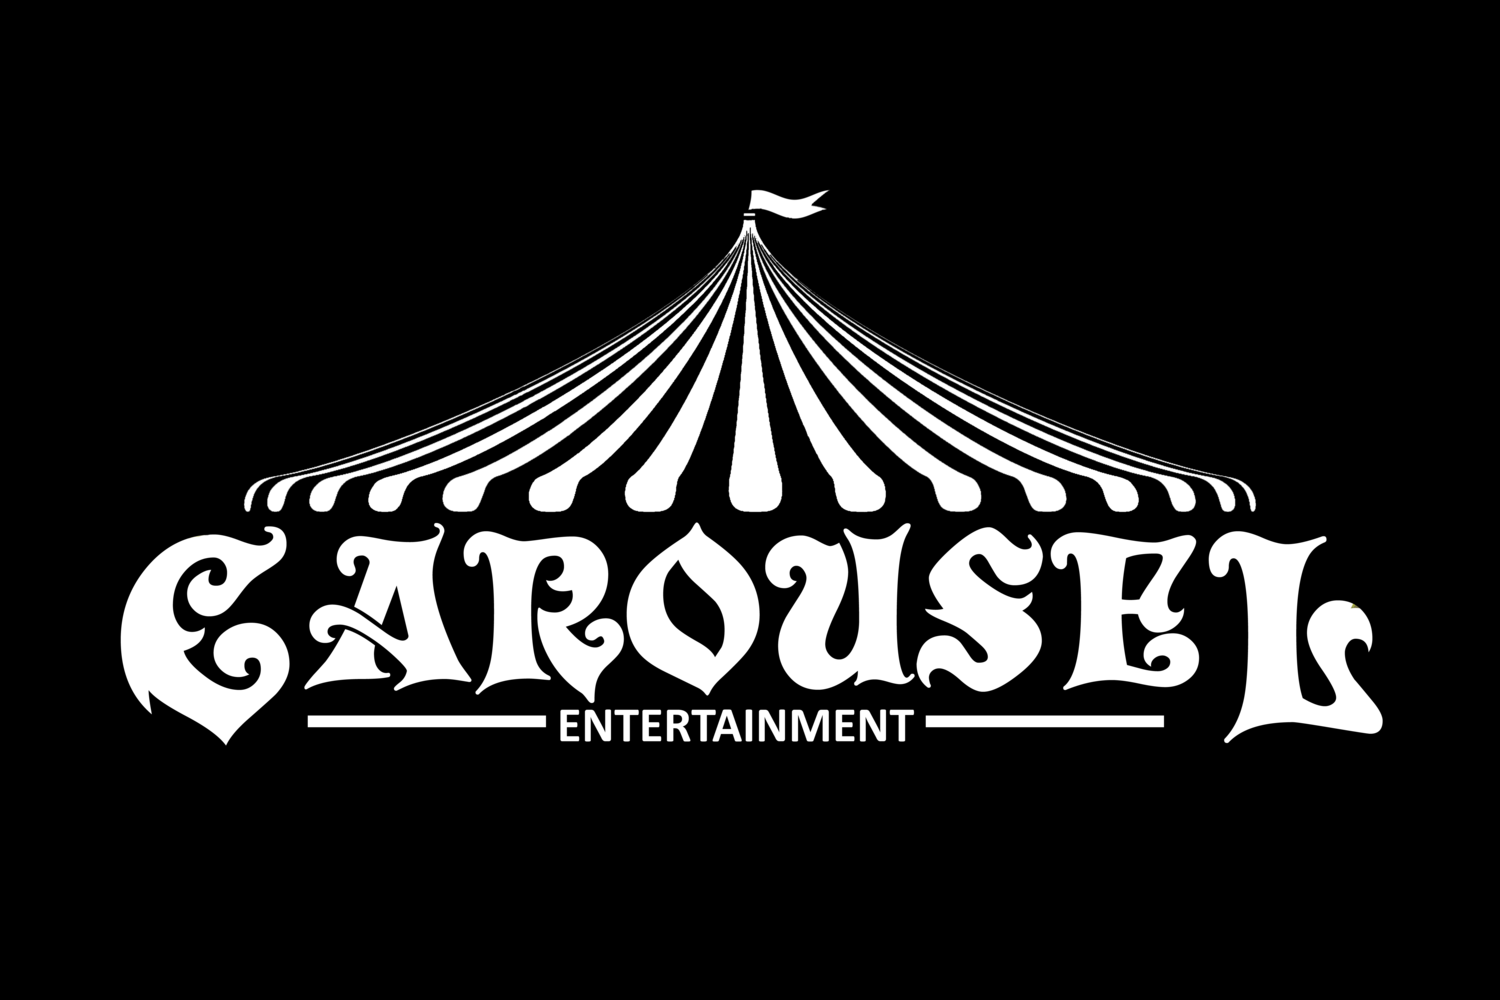 Carousel Entertainment